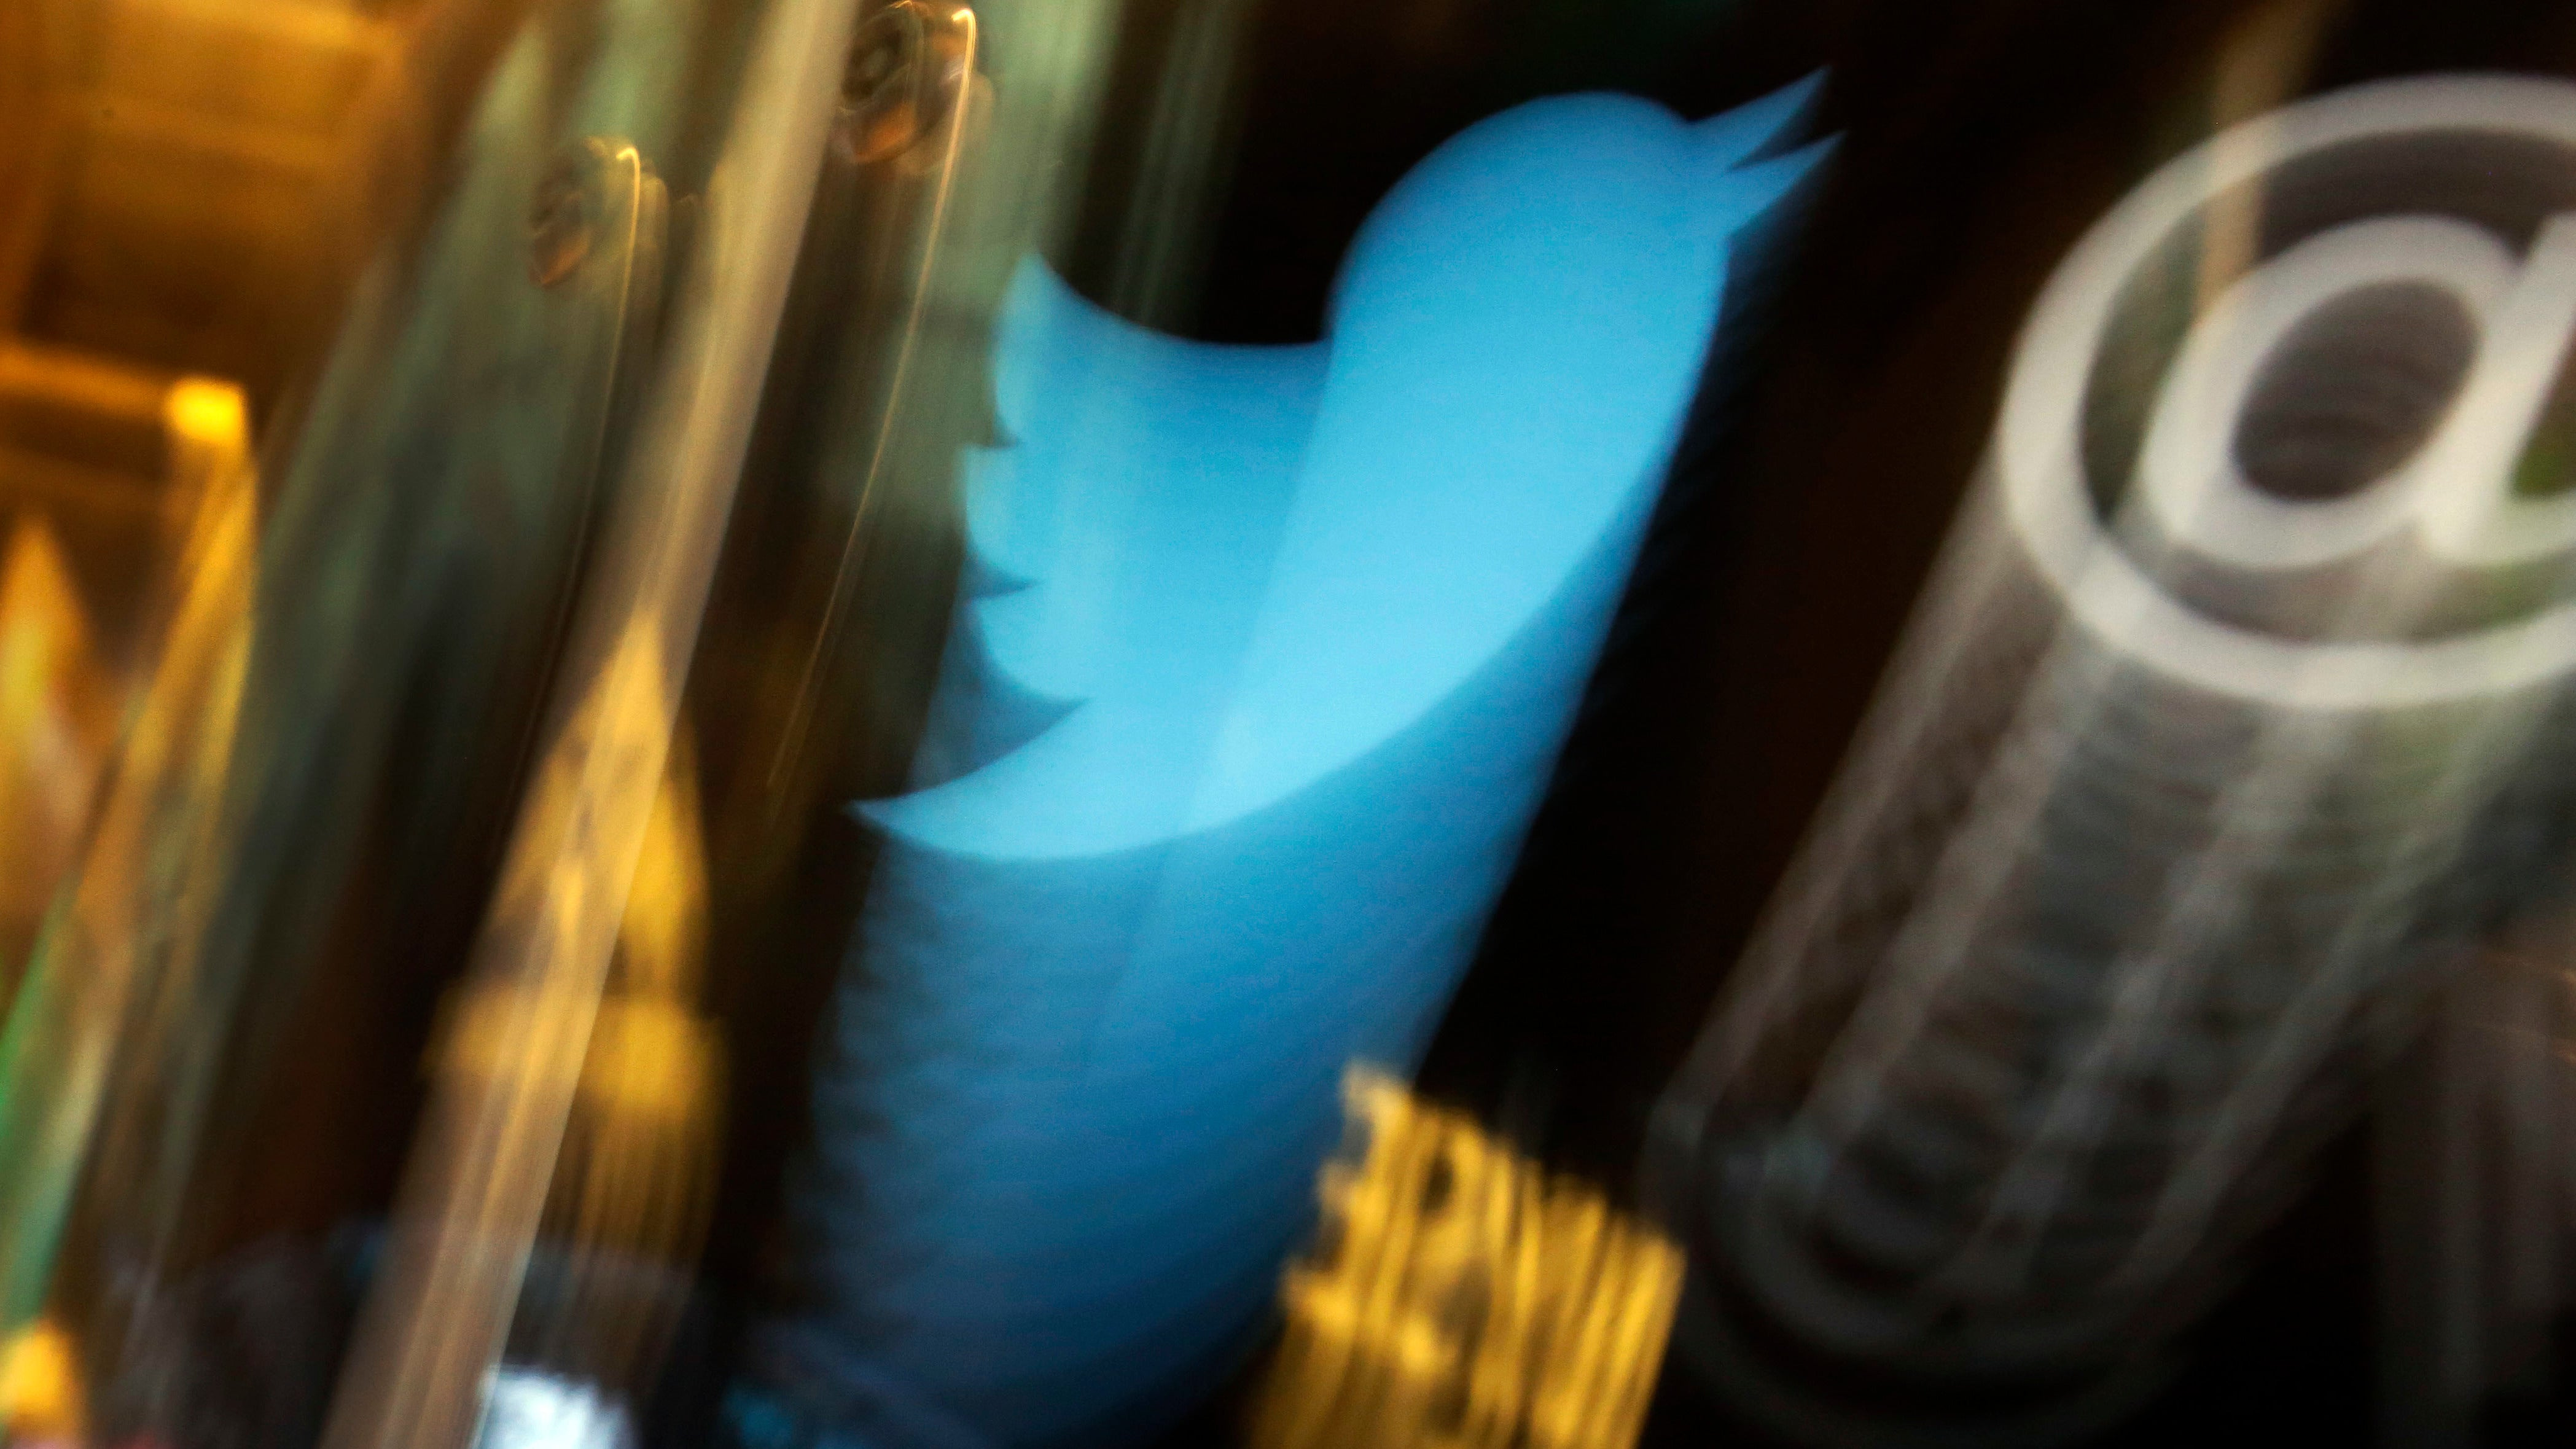 Twitter Is 'Experimenting' With A Hide Tweet Feature To Help Make The Site Less Awful